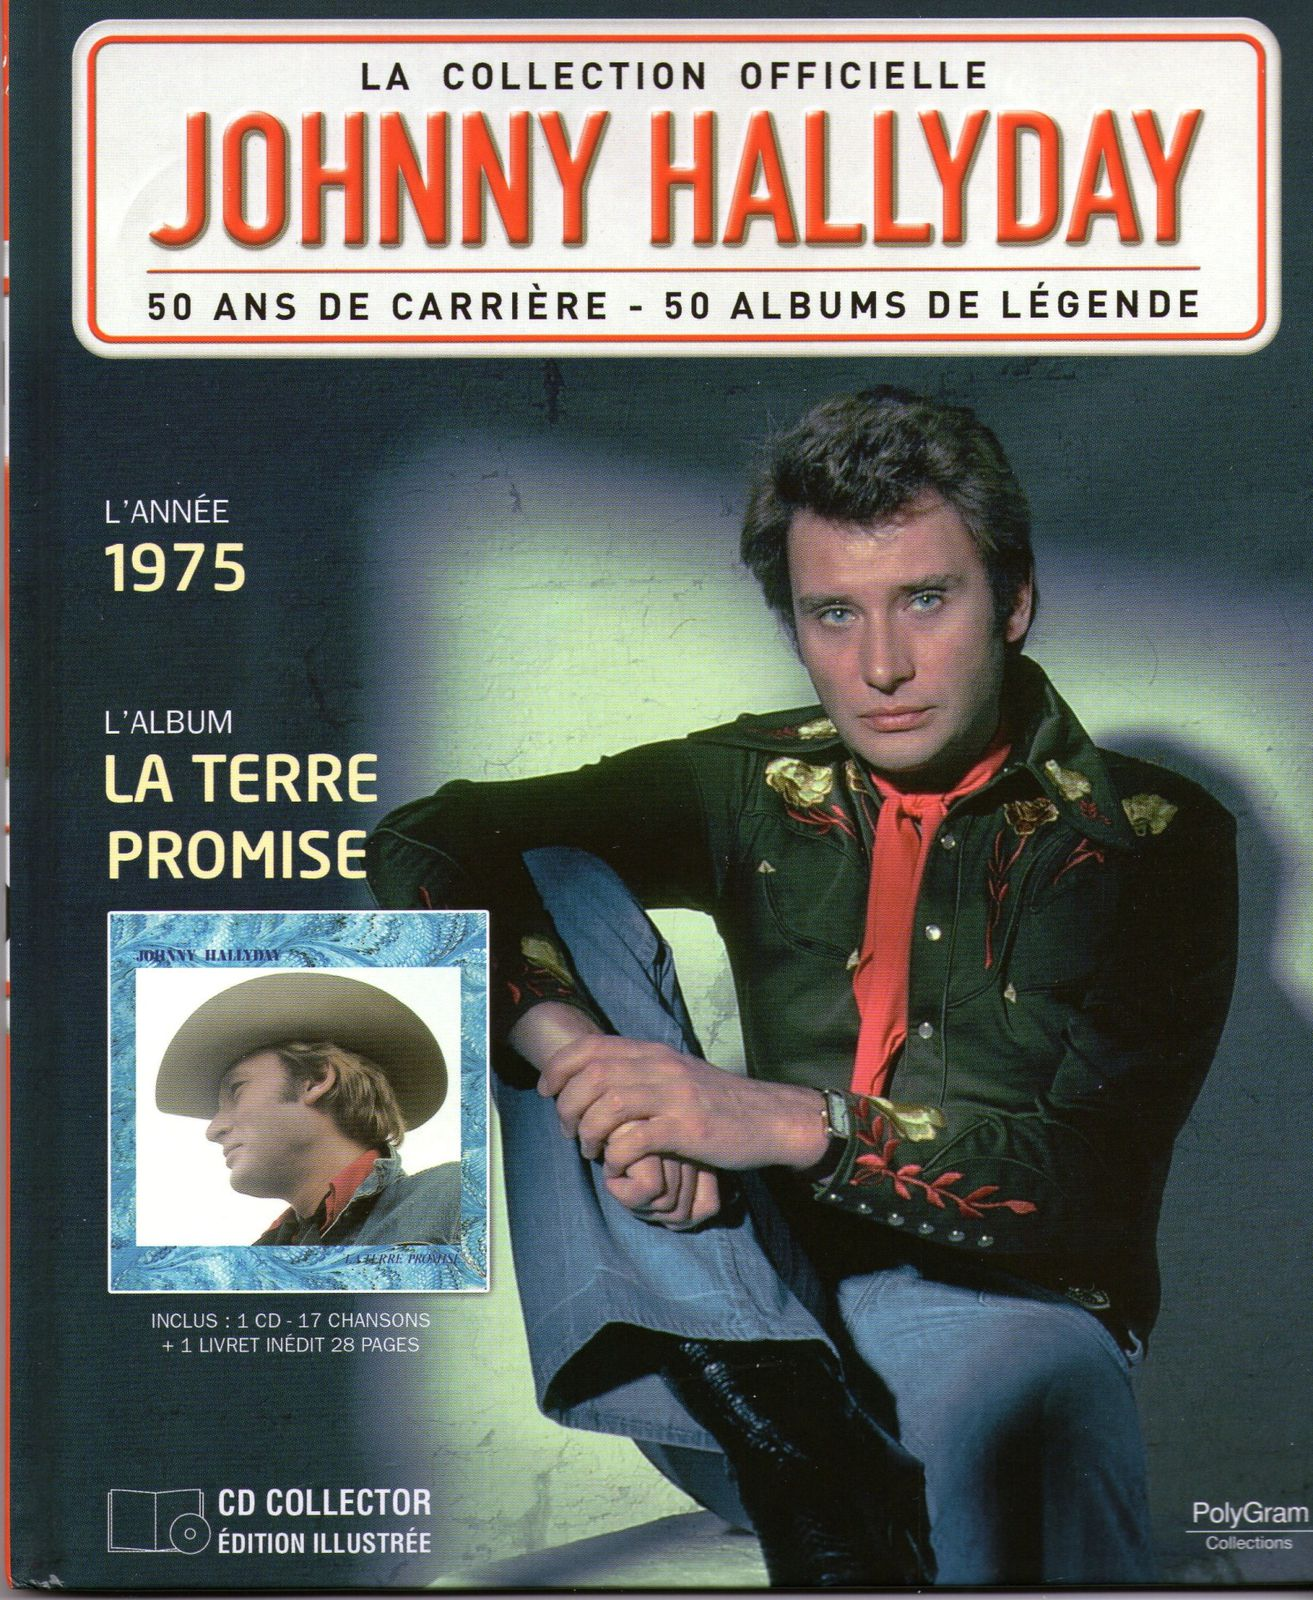 la collection officielle johnny hallyday 50 ans de carrière 50 albums de légende